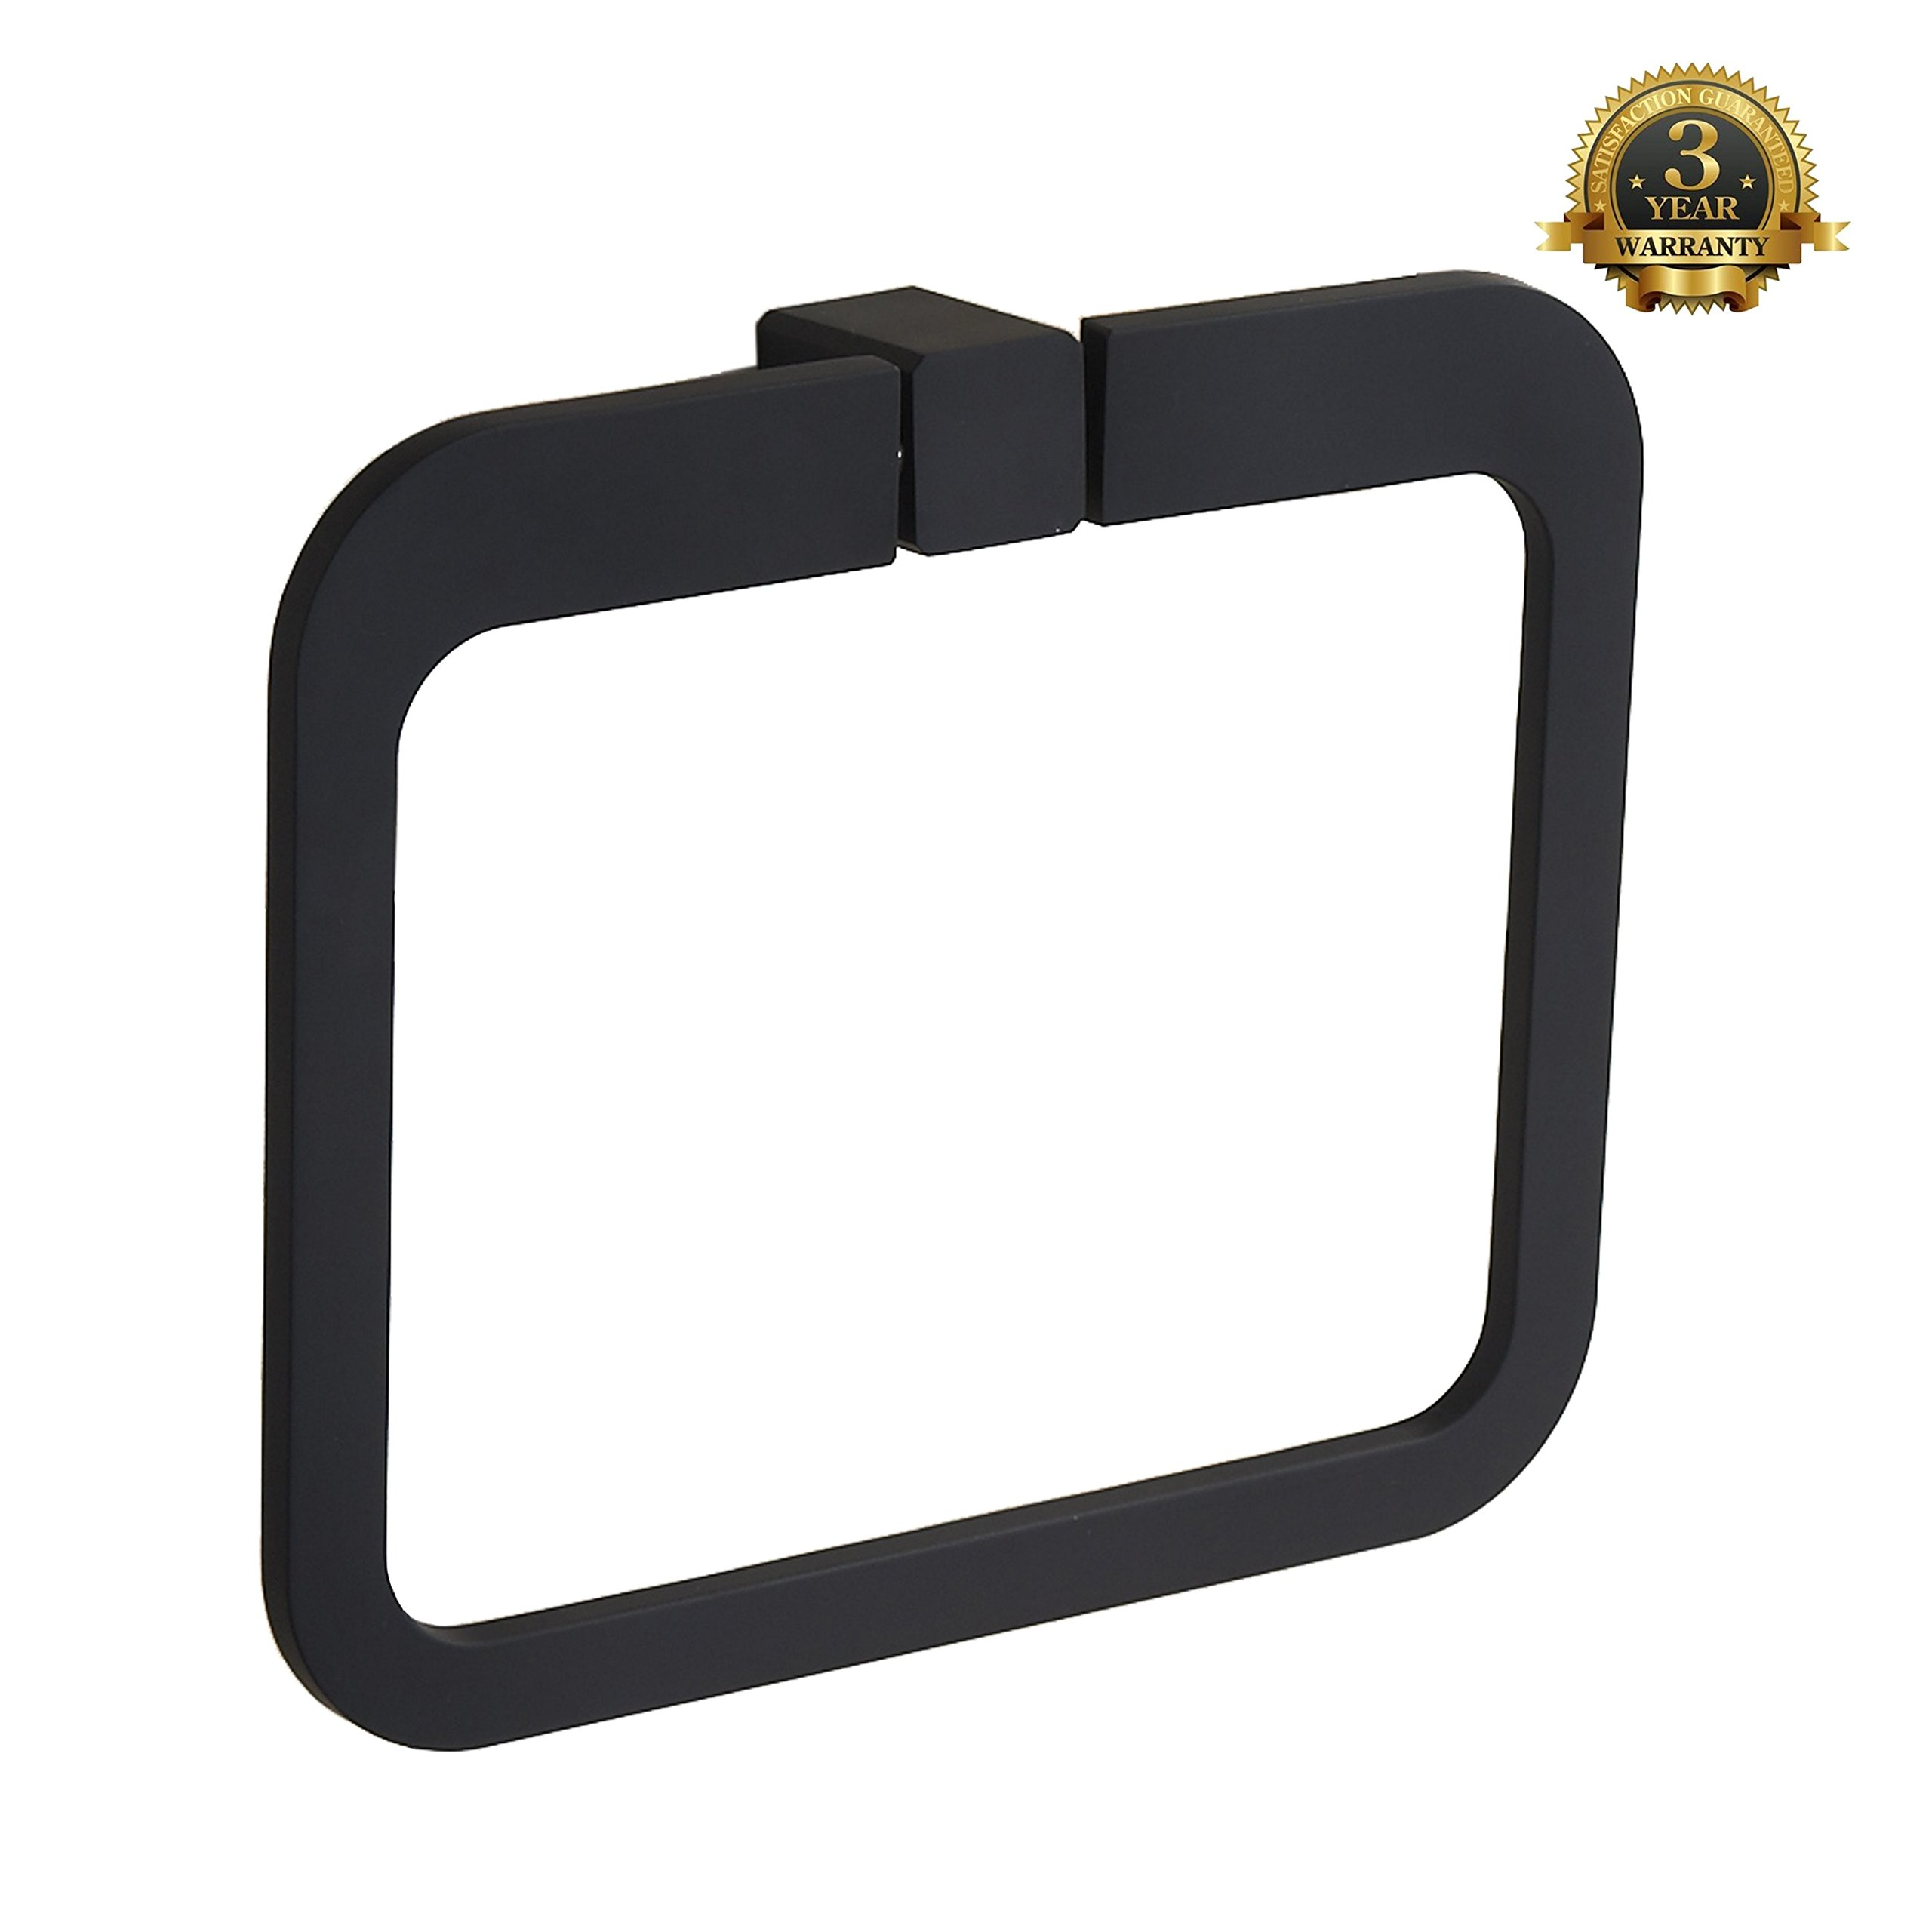 Ring Towel Hanger Bathroom Towel Ring Rack Wall Mount Towel Holder Stainless Steel Kitchen Lavatory Bath Hardware Modern Square Design, MARMOLUX ACC Burghead Series Black Finish by Marmolux Acc